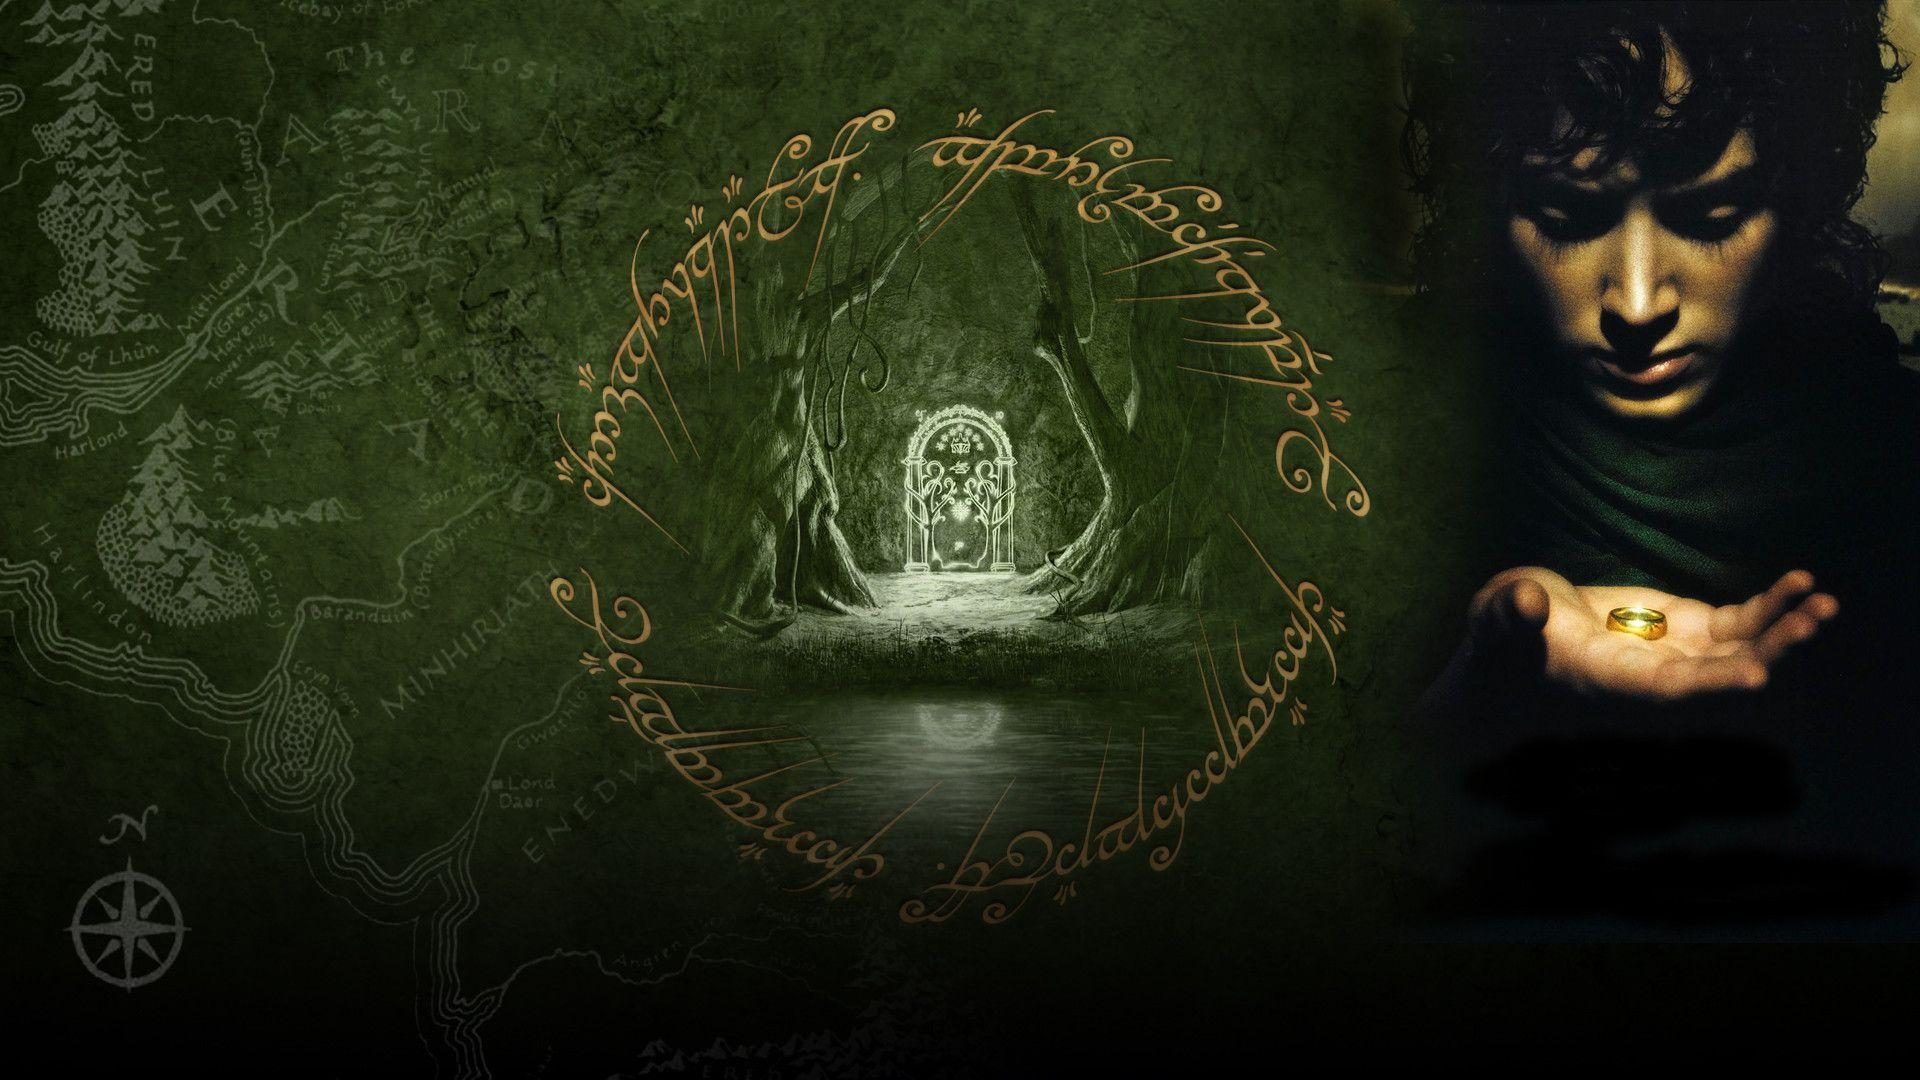 The Lord of the Rings The Fellowship of the Ring Backgrounds HD